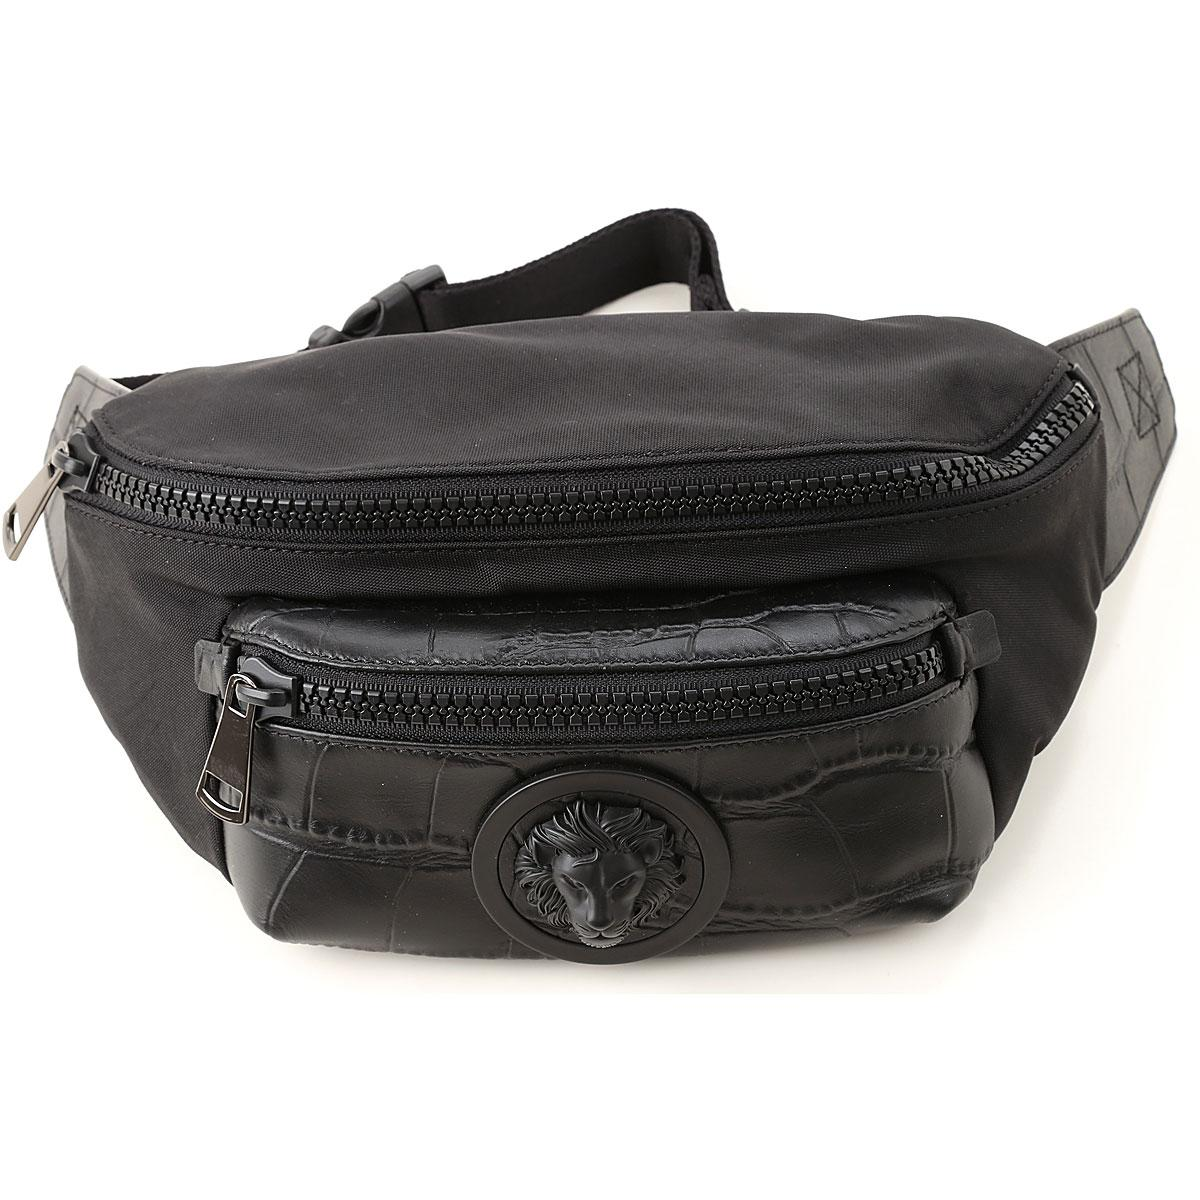 956374dd56 Lyst - Versace Weekender Duffel Bag For Men in Black for Men